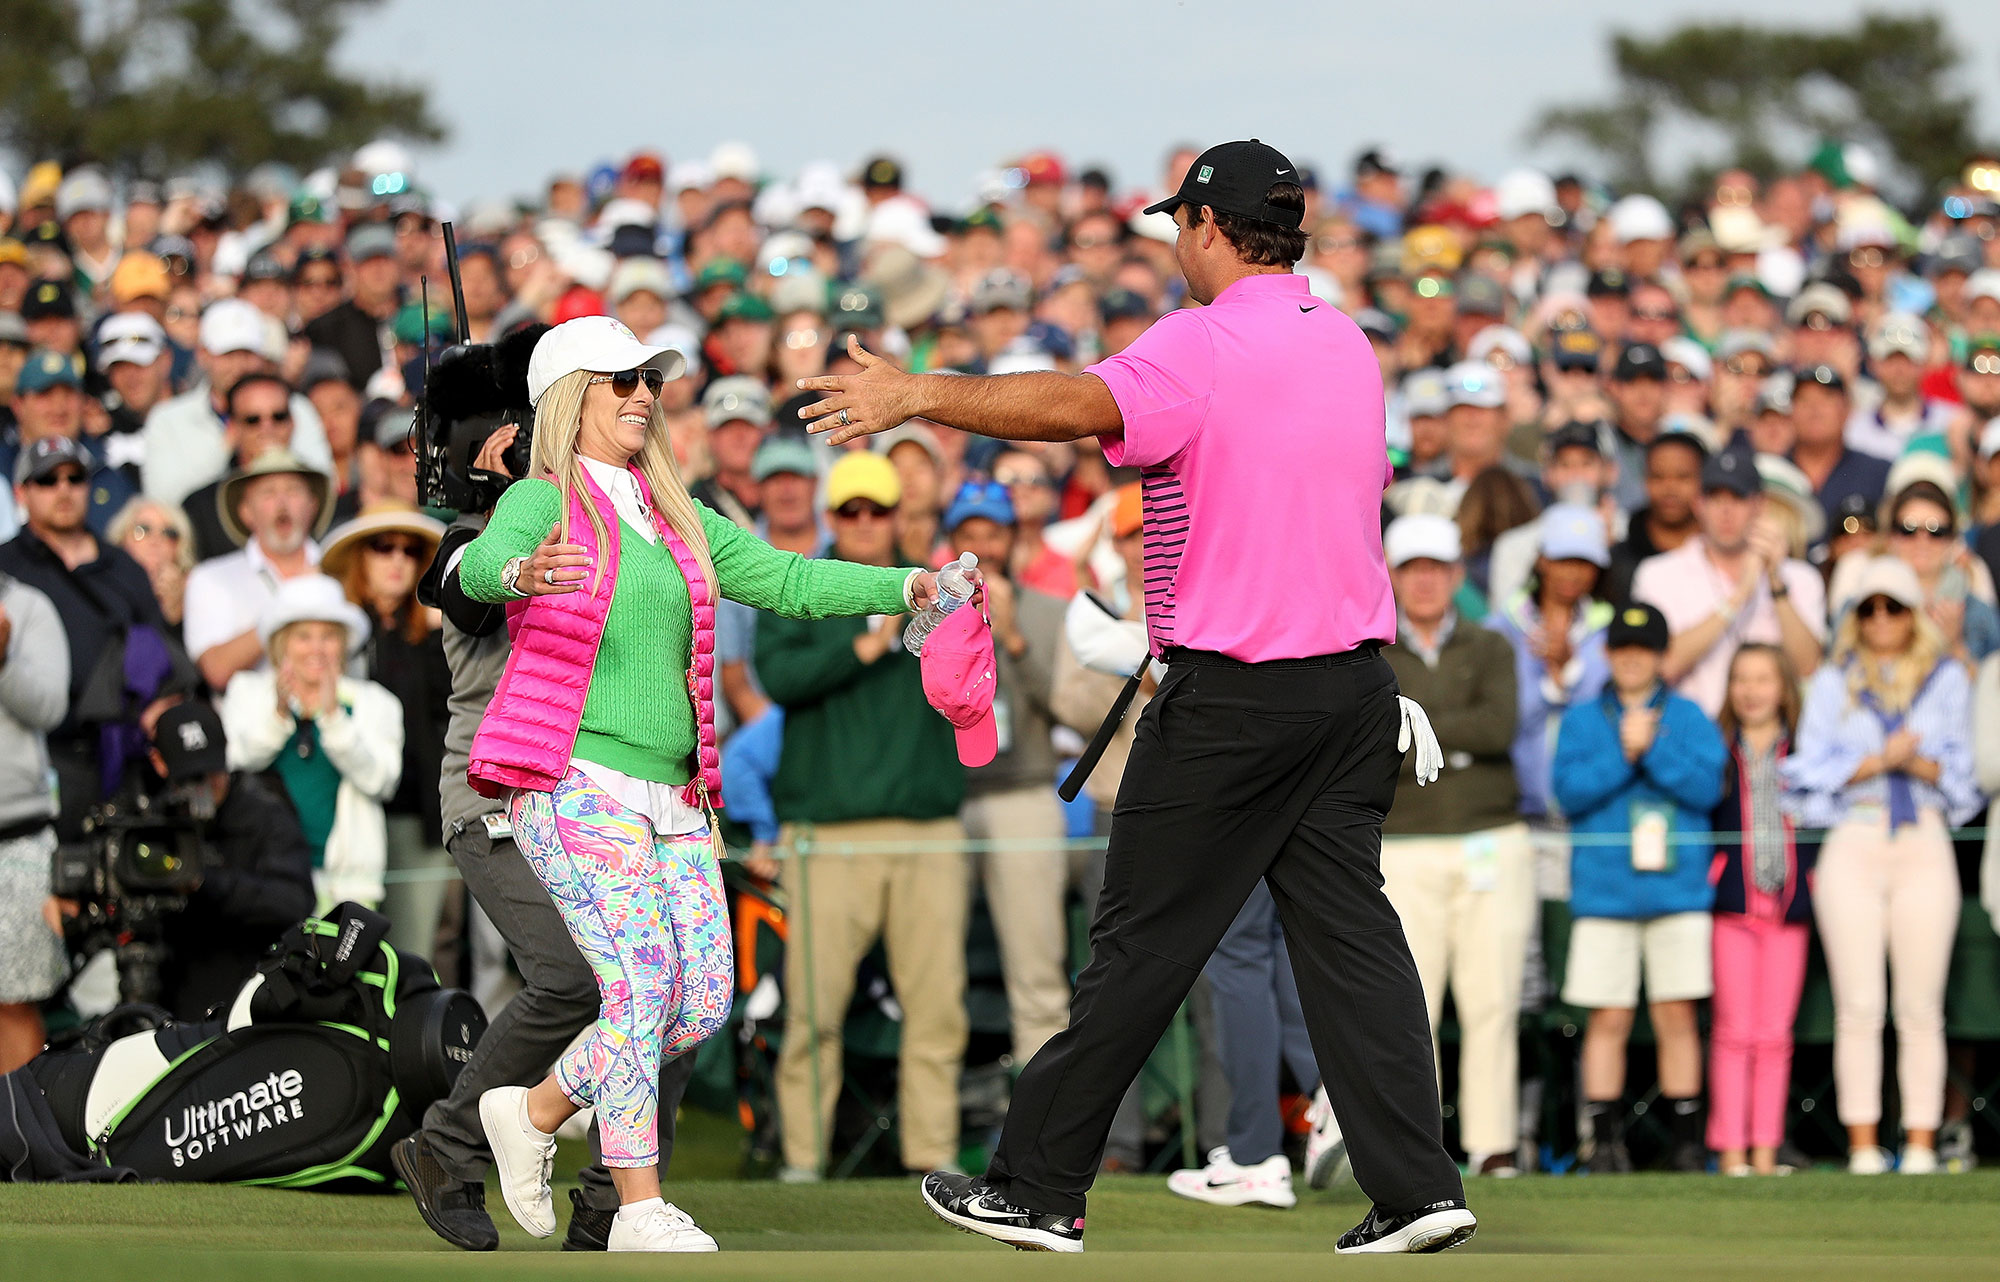 Justine Reed phones David Leadbetter to look at Patrick's golf swing!